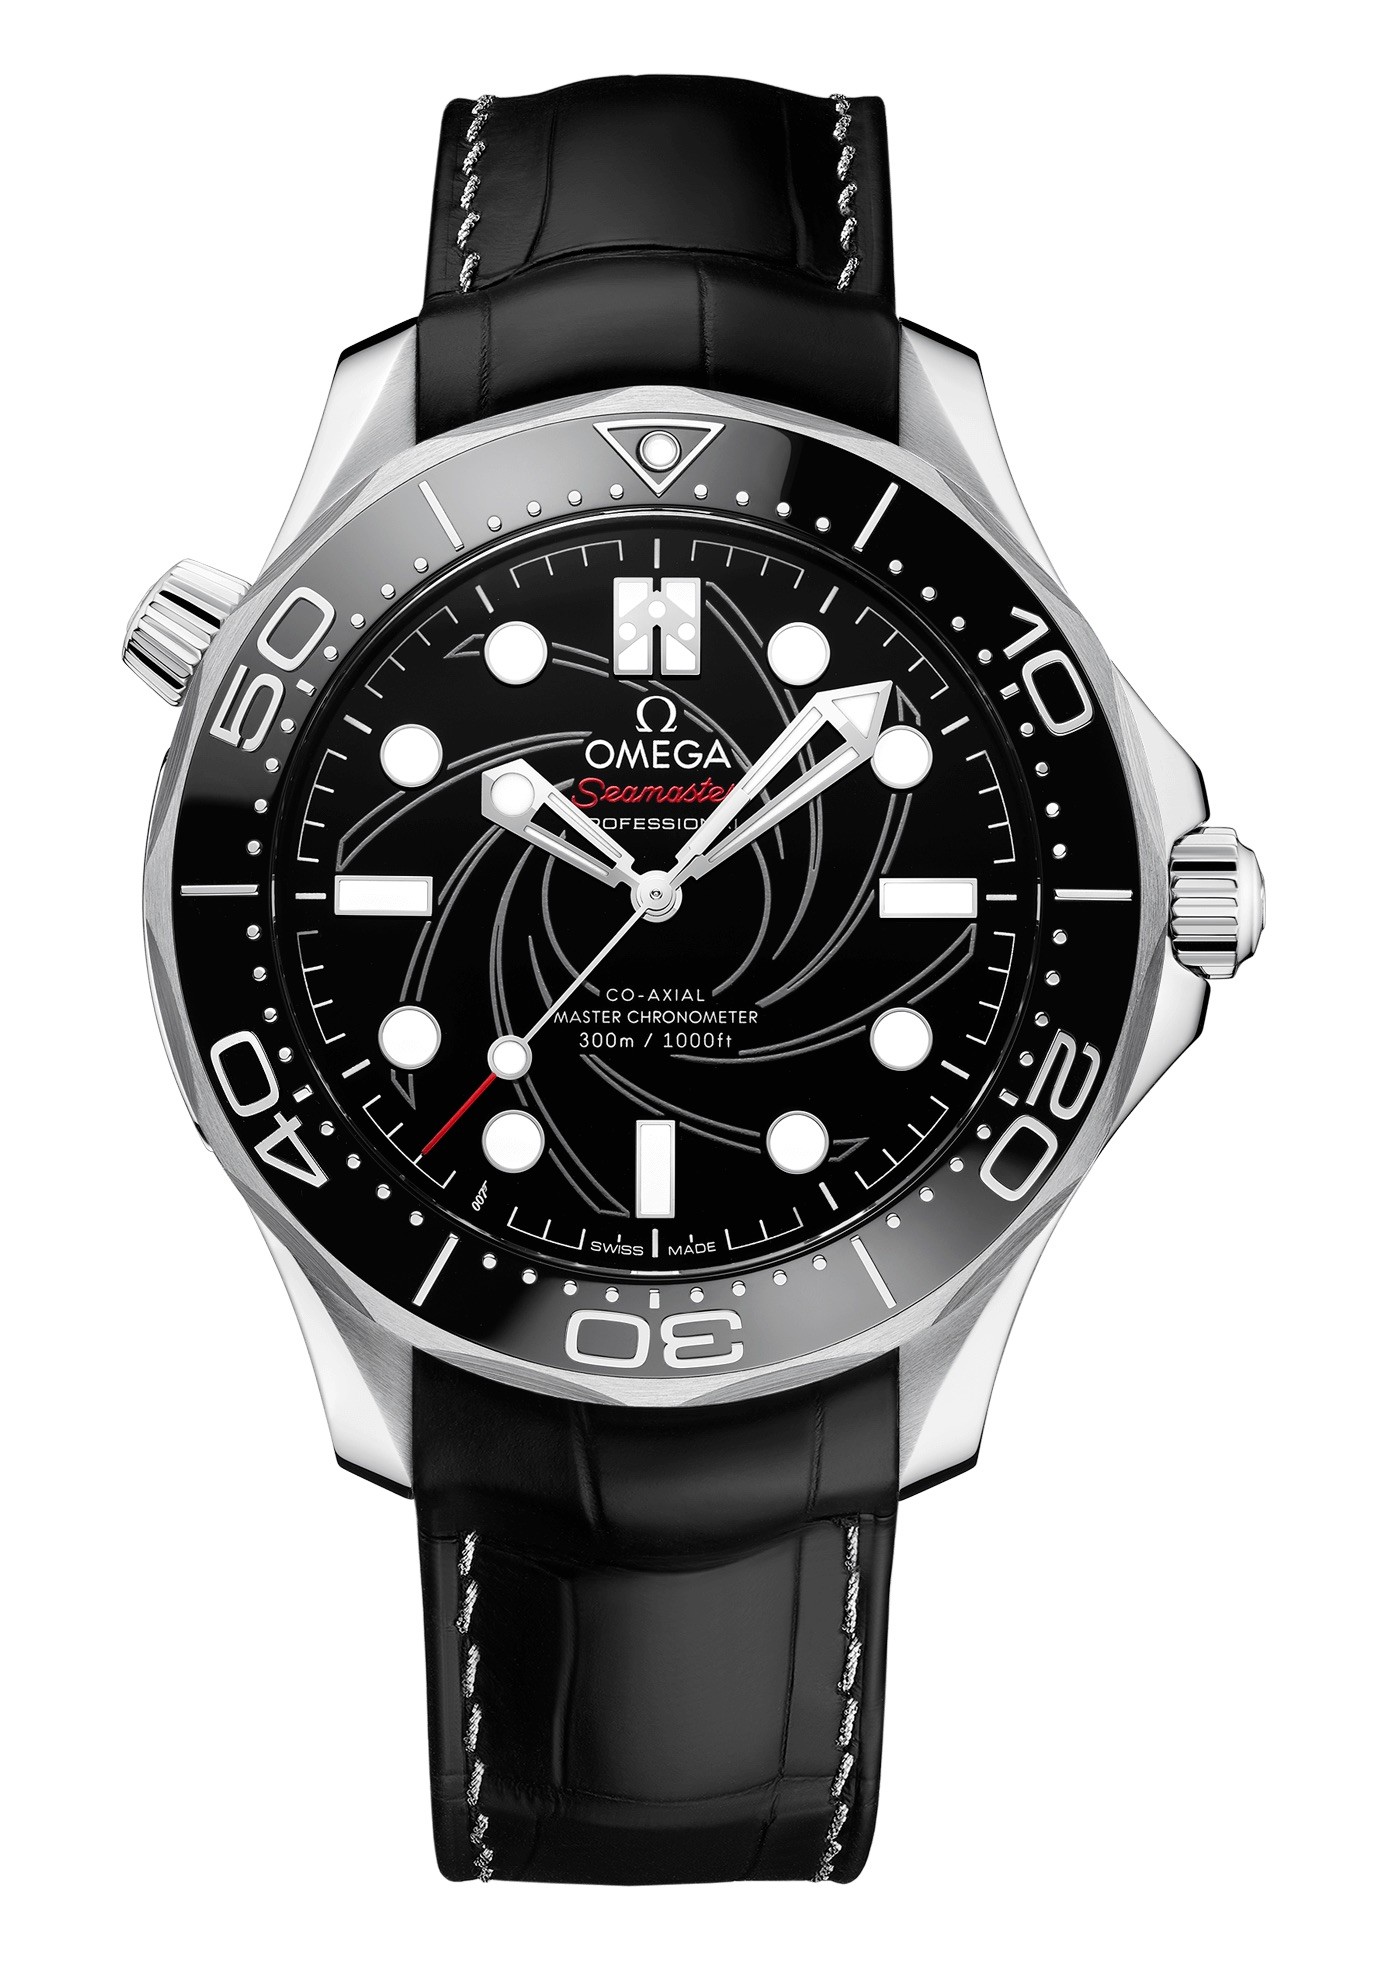 omega-seamaster-diver-300m-21093422001001-1-product-zoom